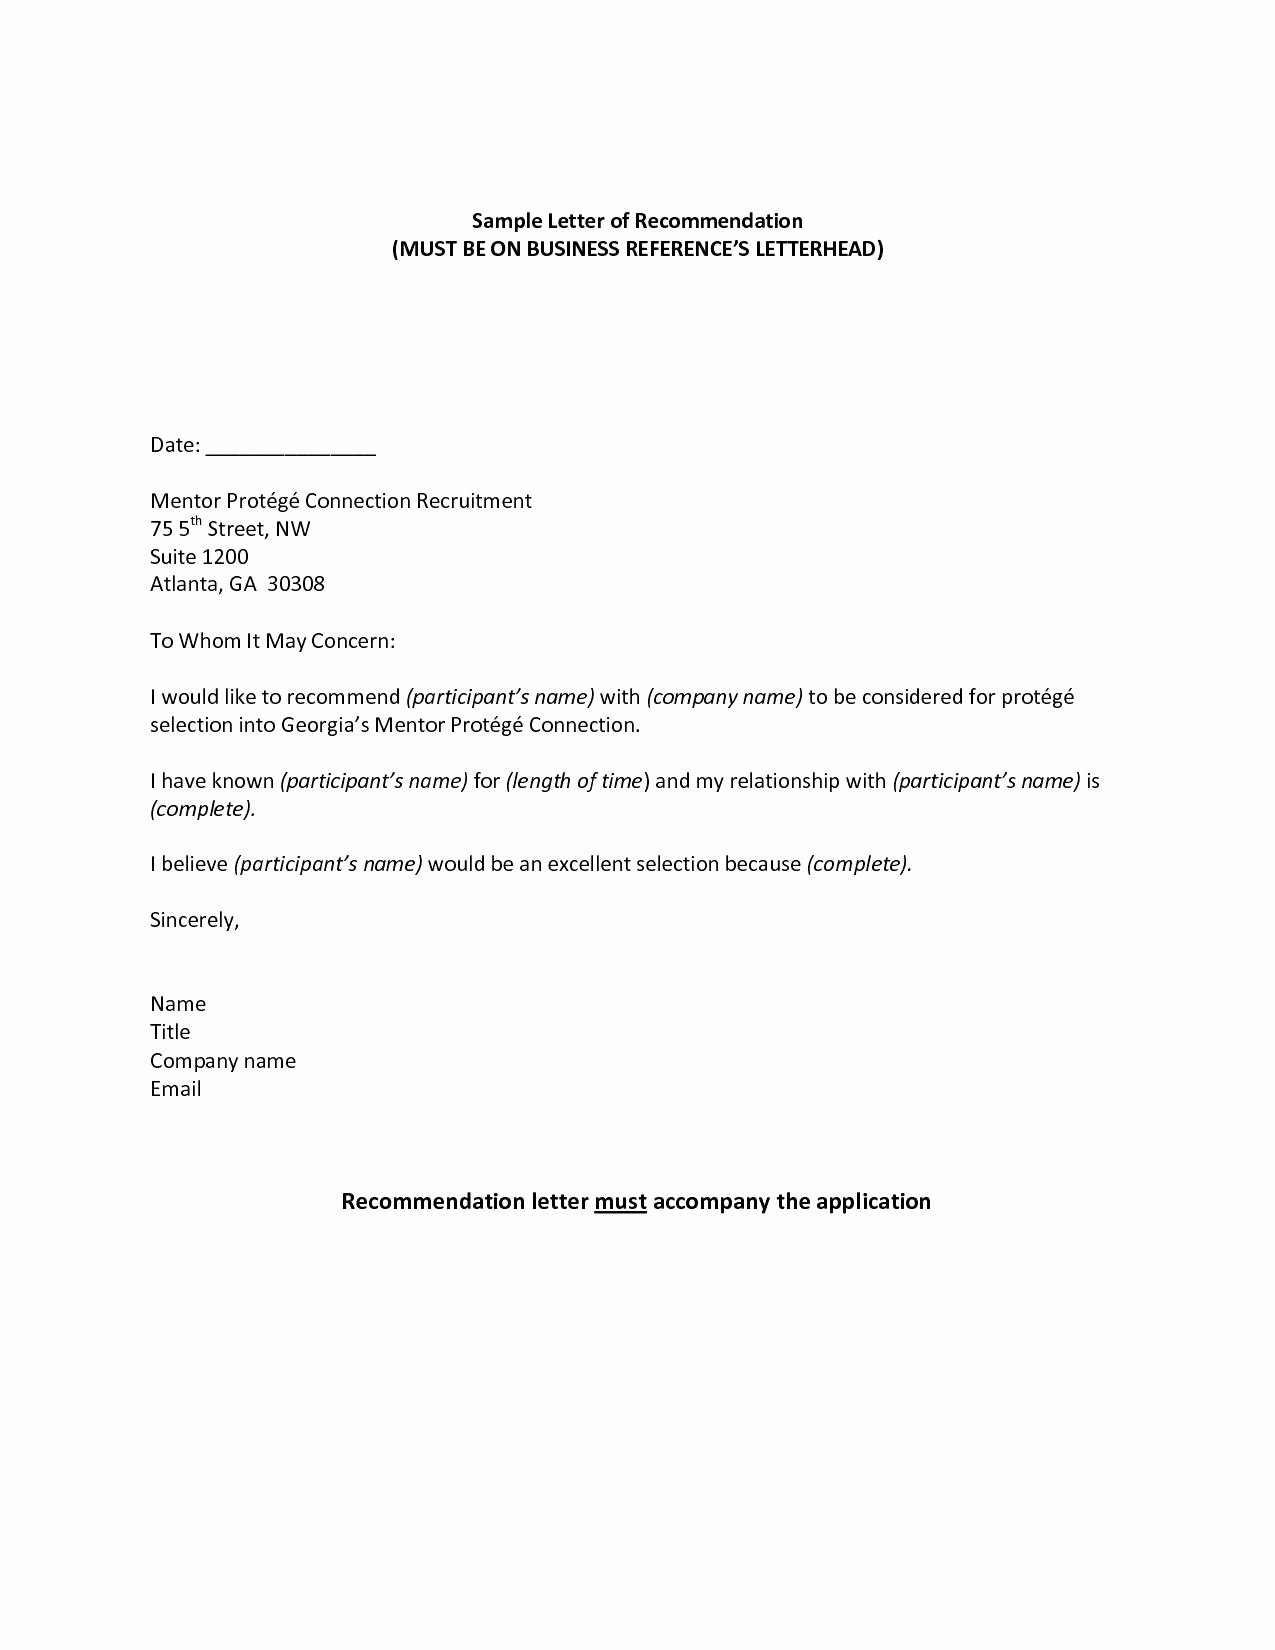 Letter Of Recommendation for Loan New Mortgage Reference Letter From Employer Template Samples